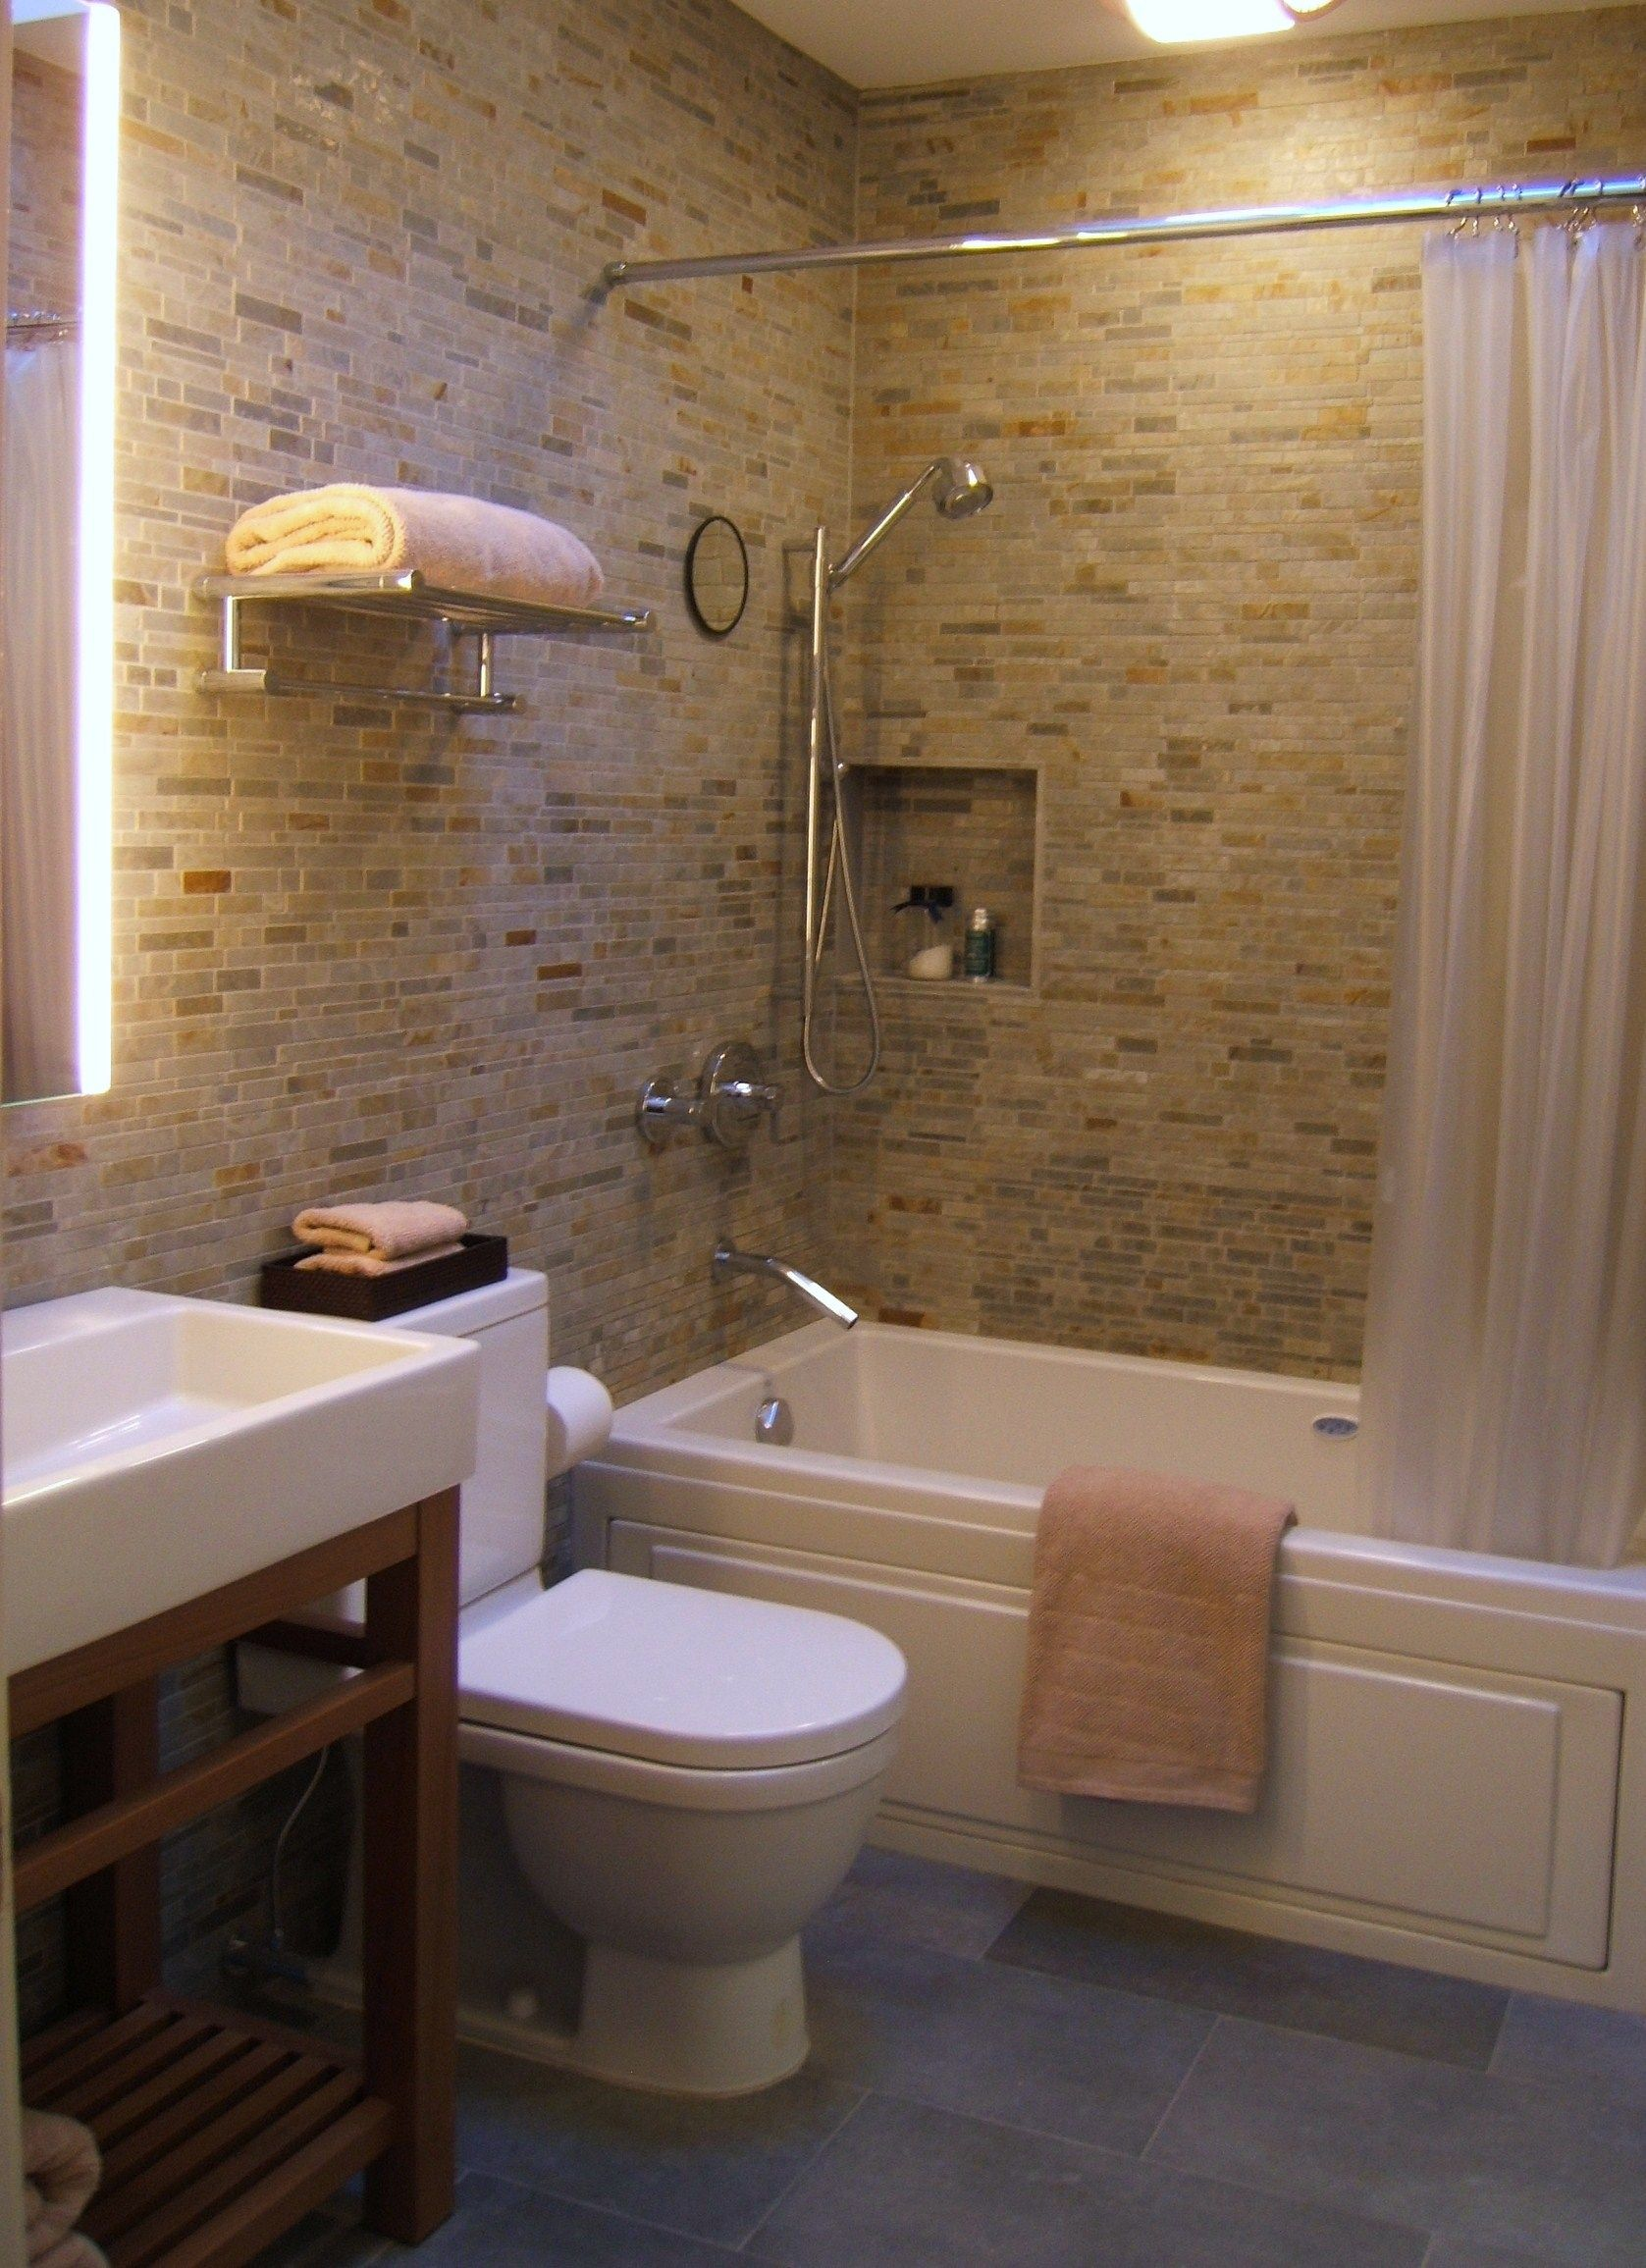 Small bathroom designs south africa small bath for Bathroom designs low budget